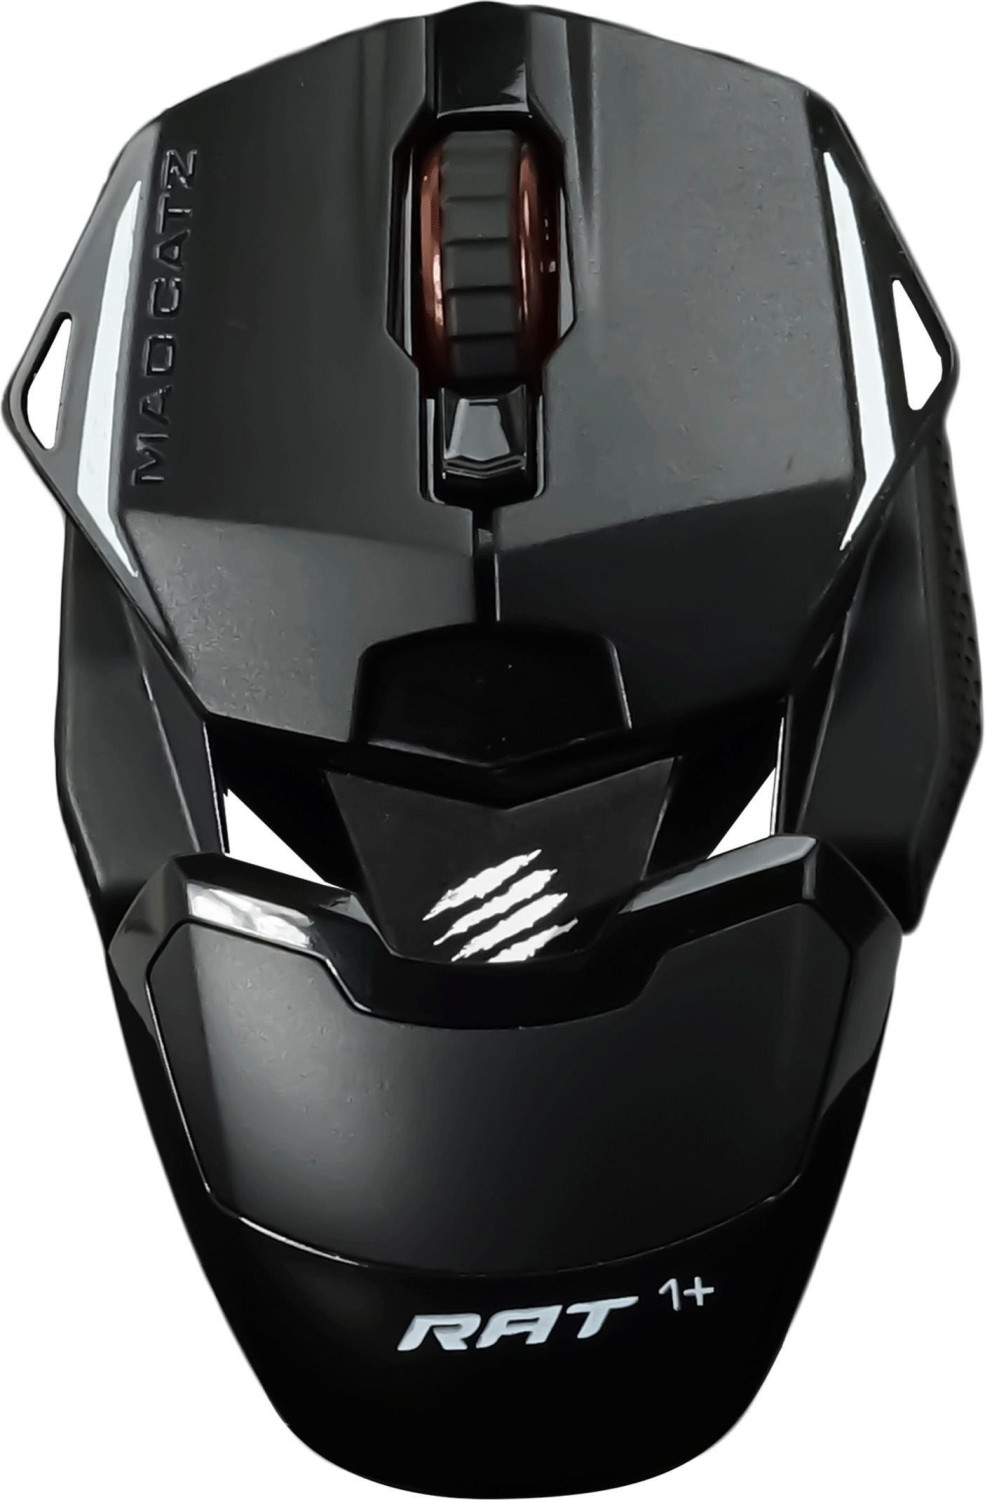 Image of Mad Catz R.A.T. 1+